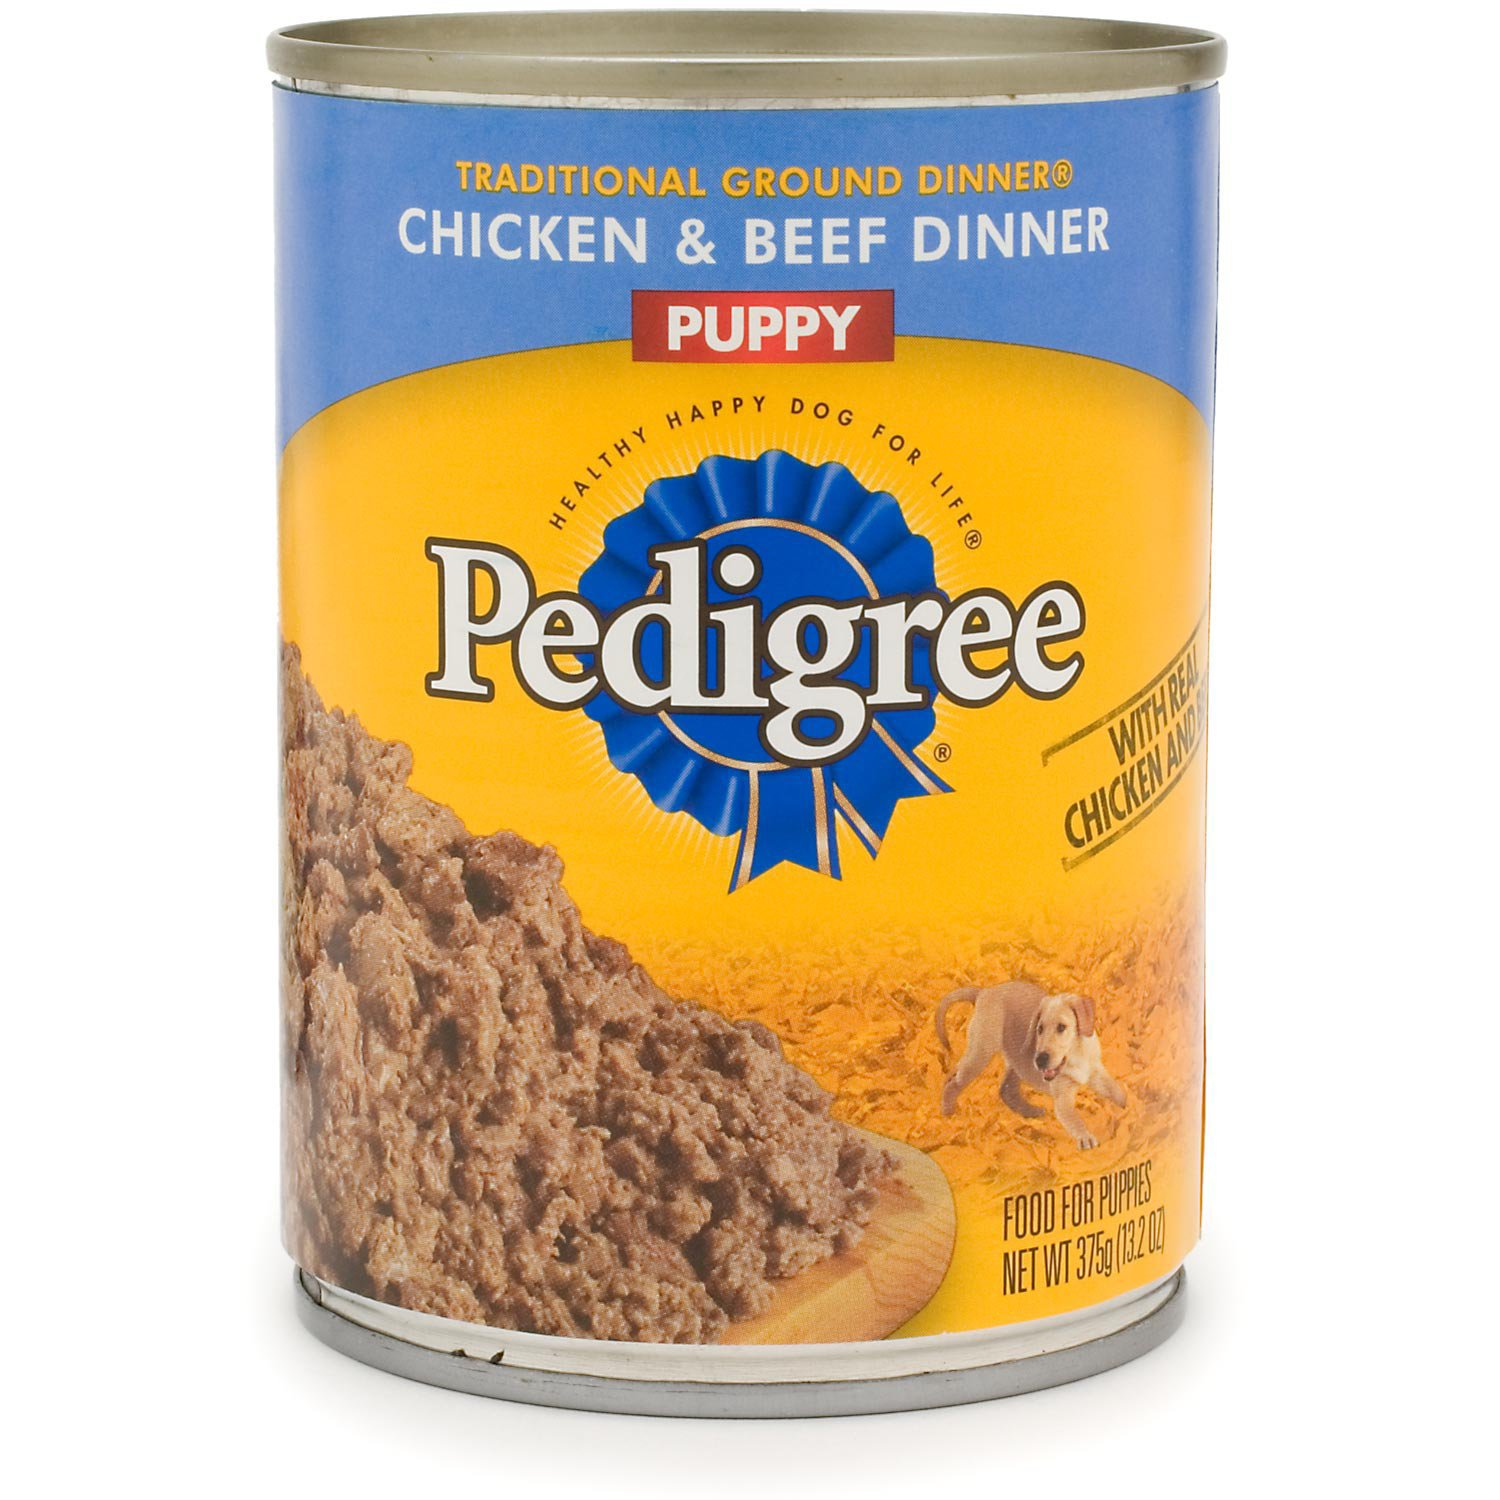 Pedigree Traditional Ground Dinner Chicken & Beef Canned Puppy Food